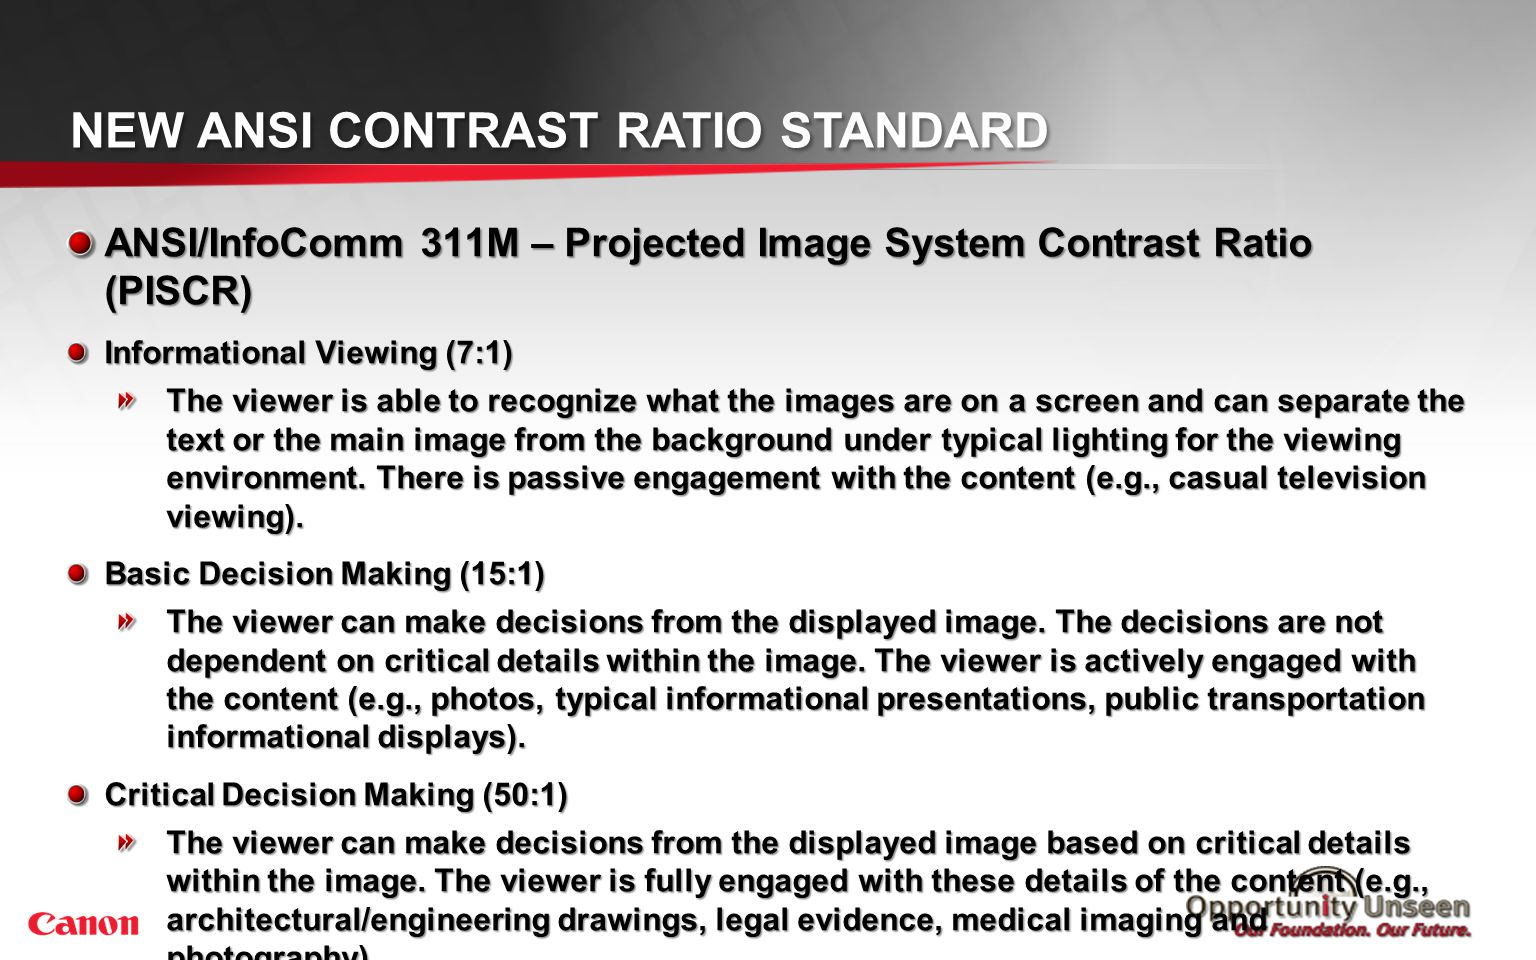 NEW ANSI CONTRAST RATIO STANDARD ANSI/InfoComm 311M – Projected Image System Contrast Ratio (PISCR) Informational Viewing (7:1) The viewer is able to